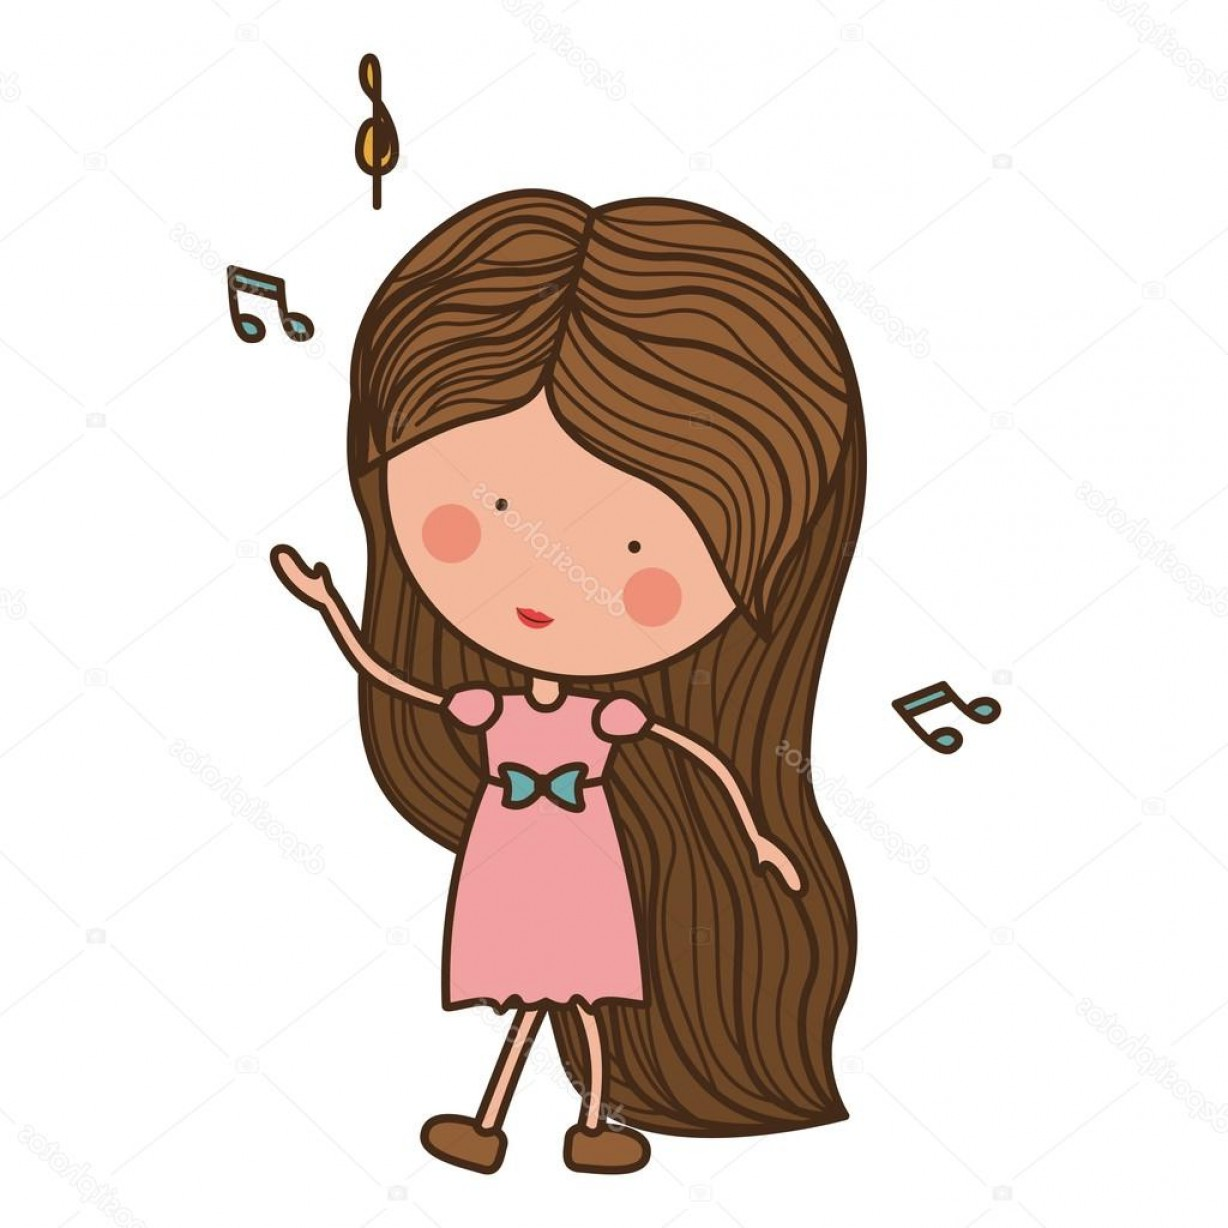 Dancing Musical Notes Vector: Stock Illustration Woman Dancing With Musical Notes